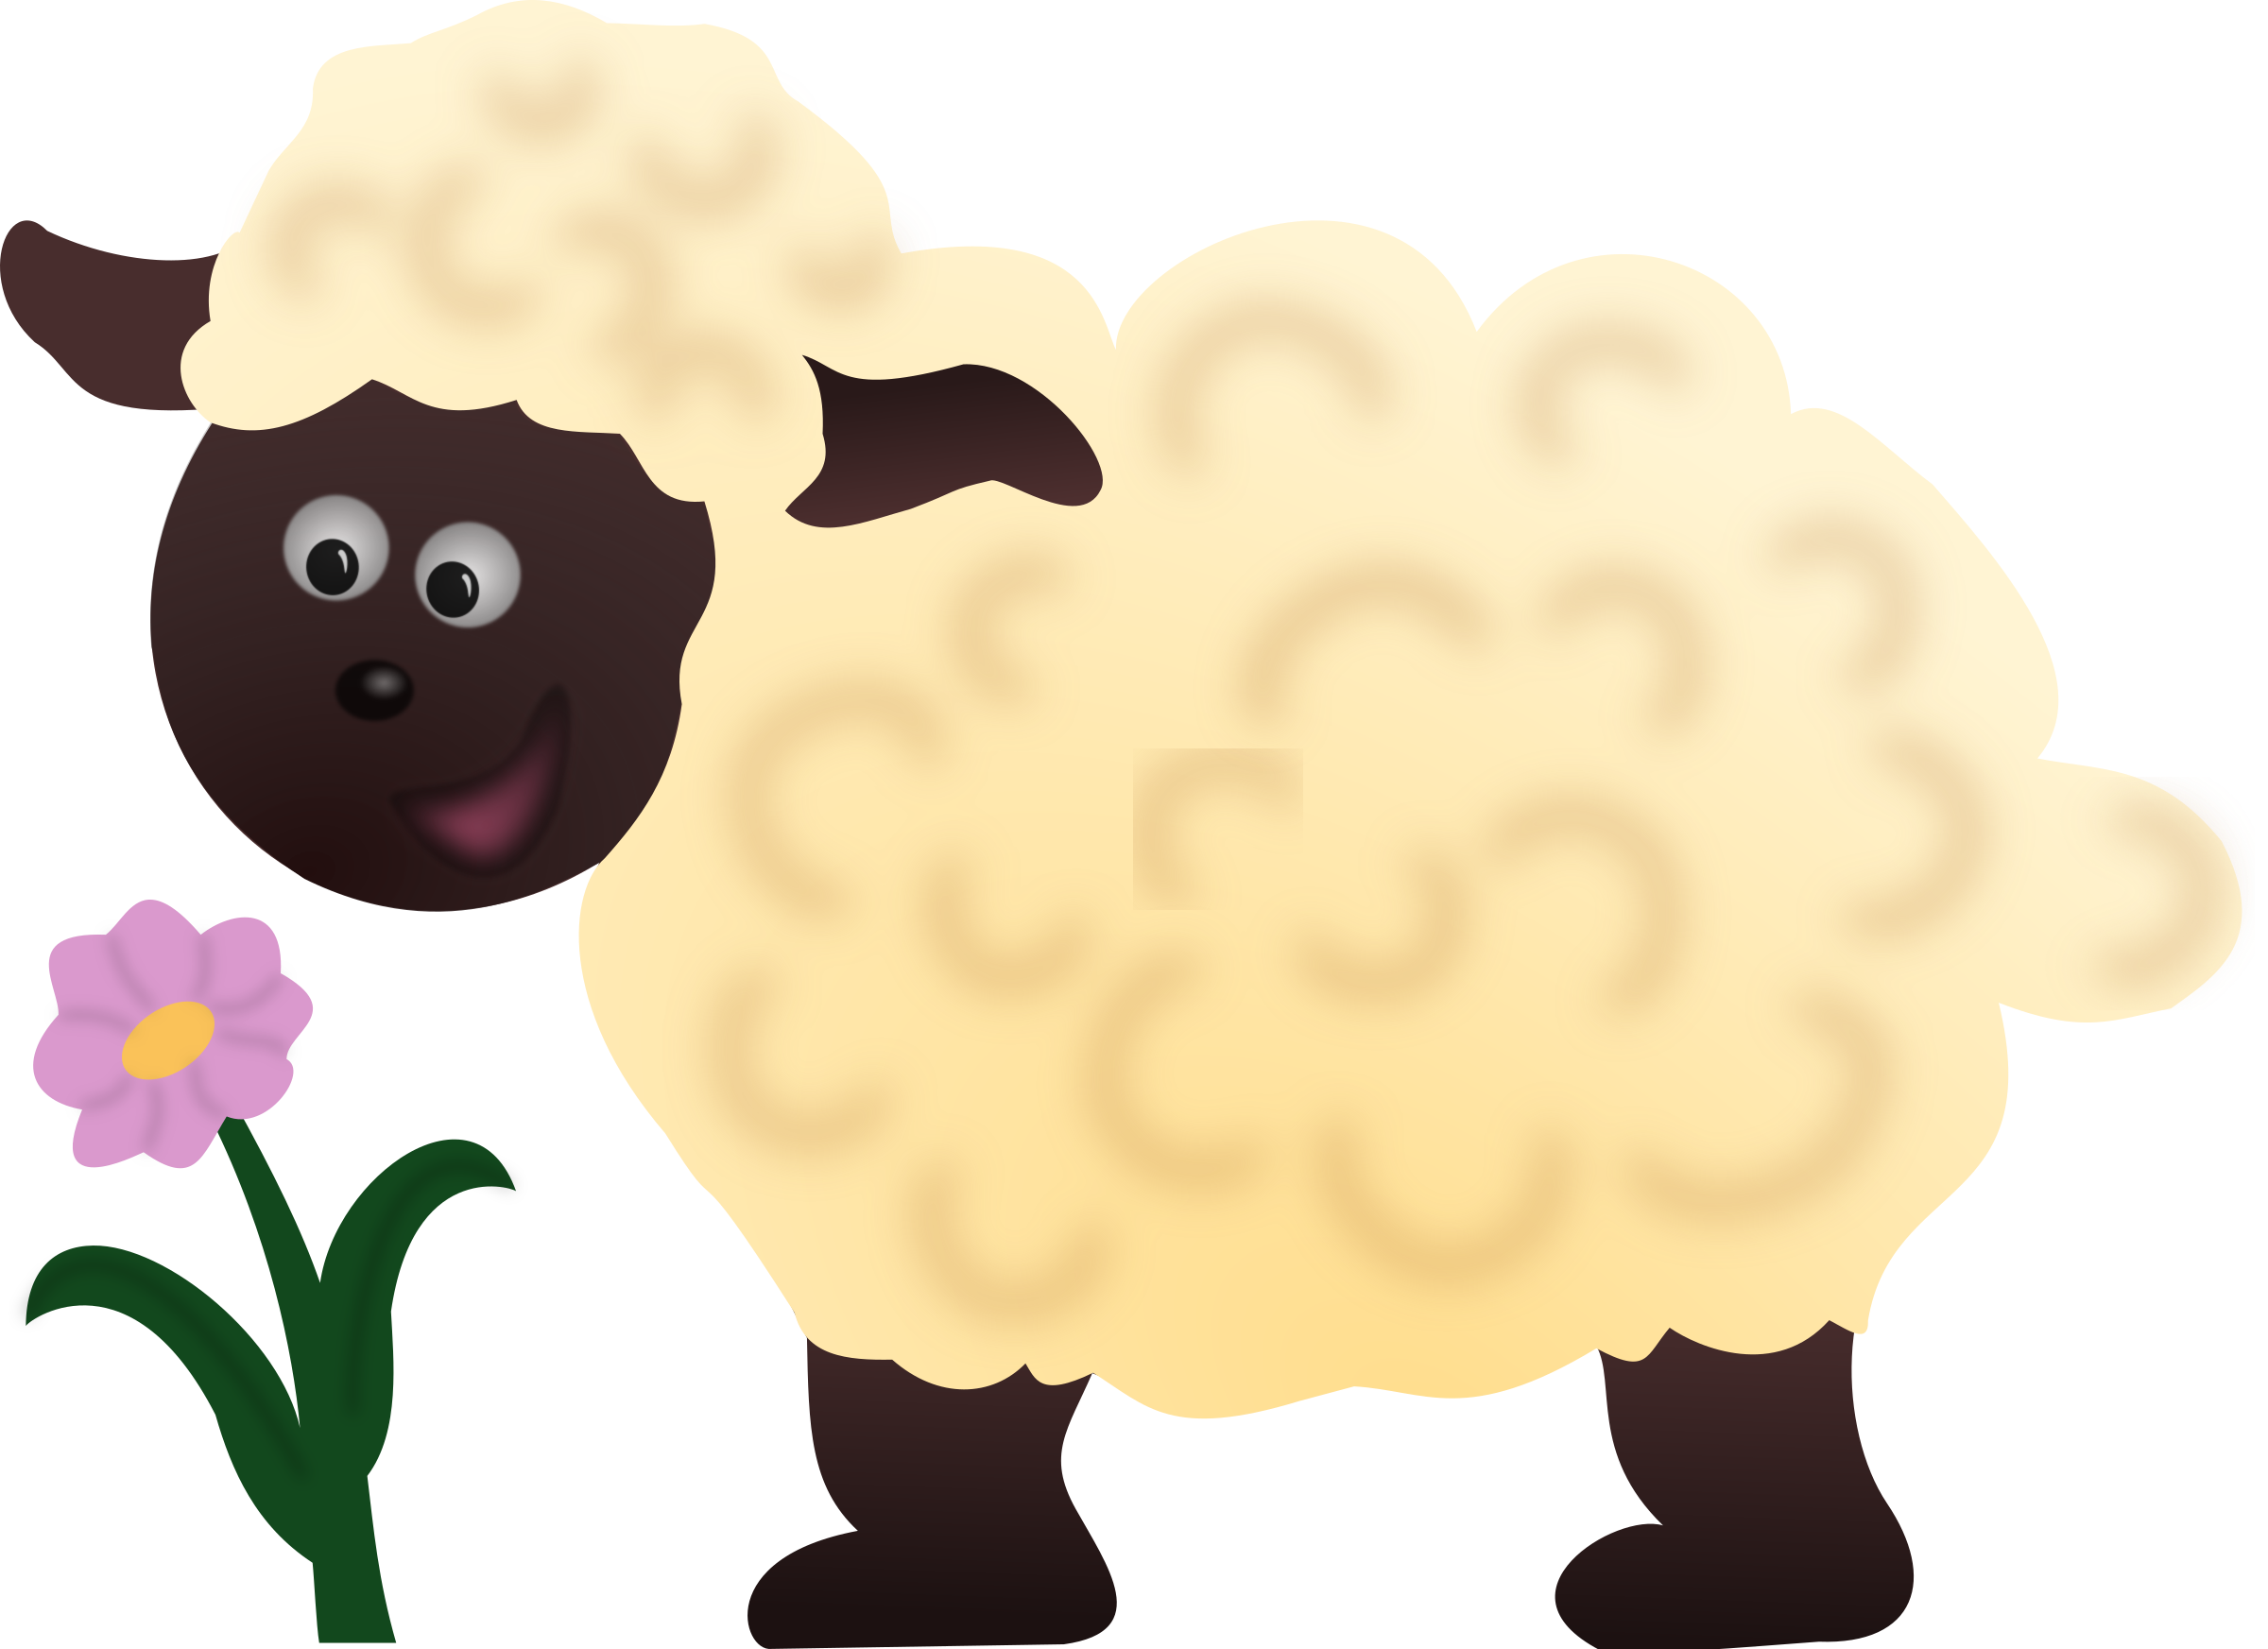 jpg transparent Sheep dog free on. Lamb clipart